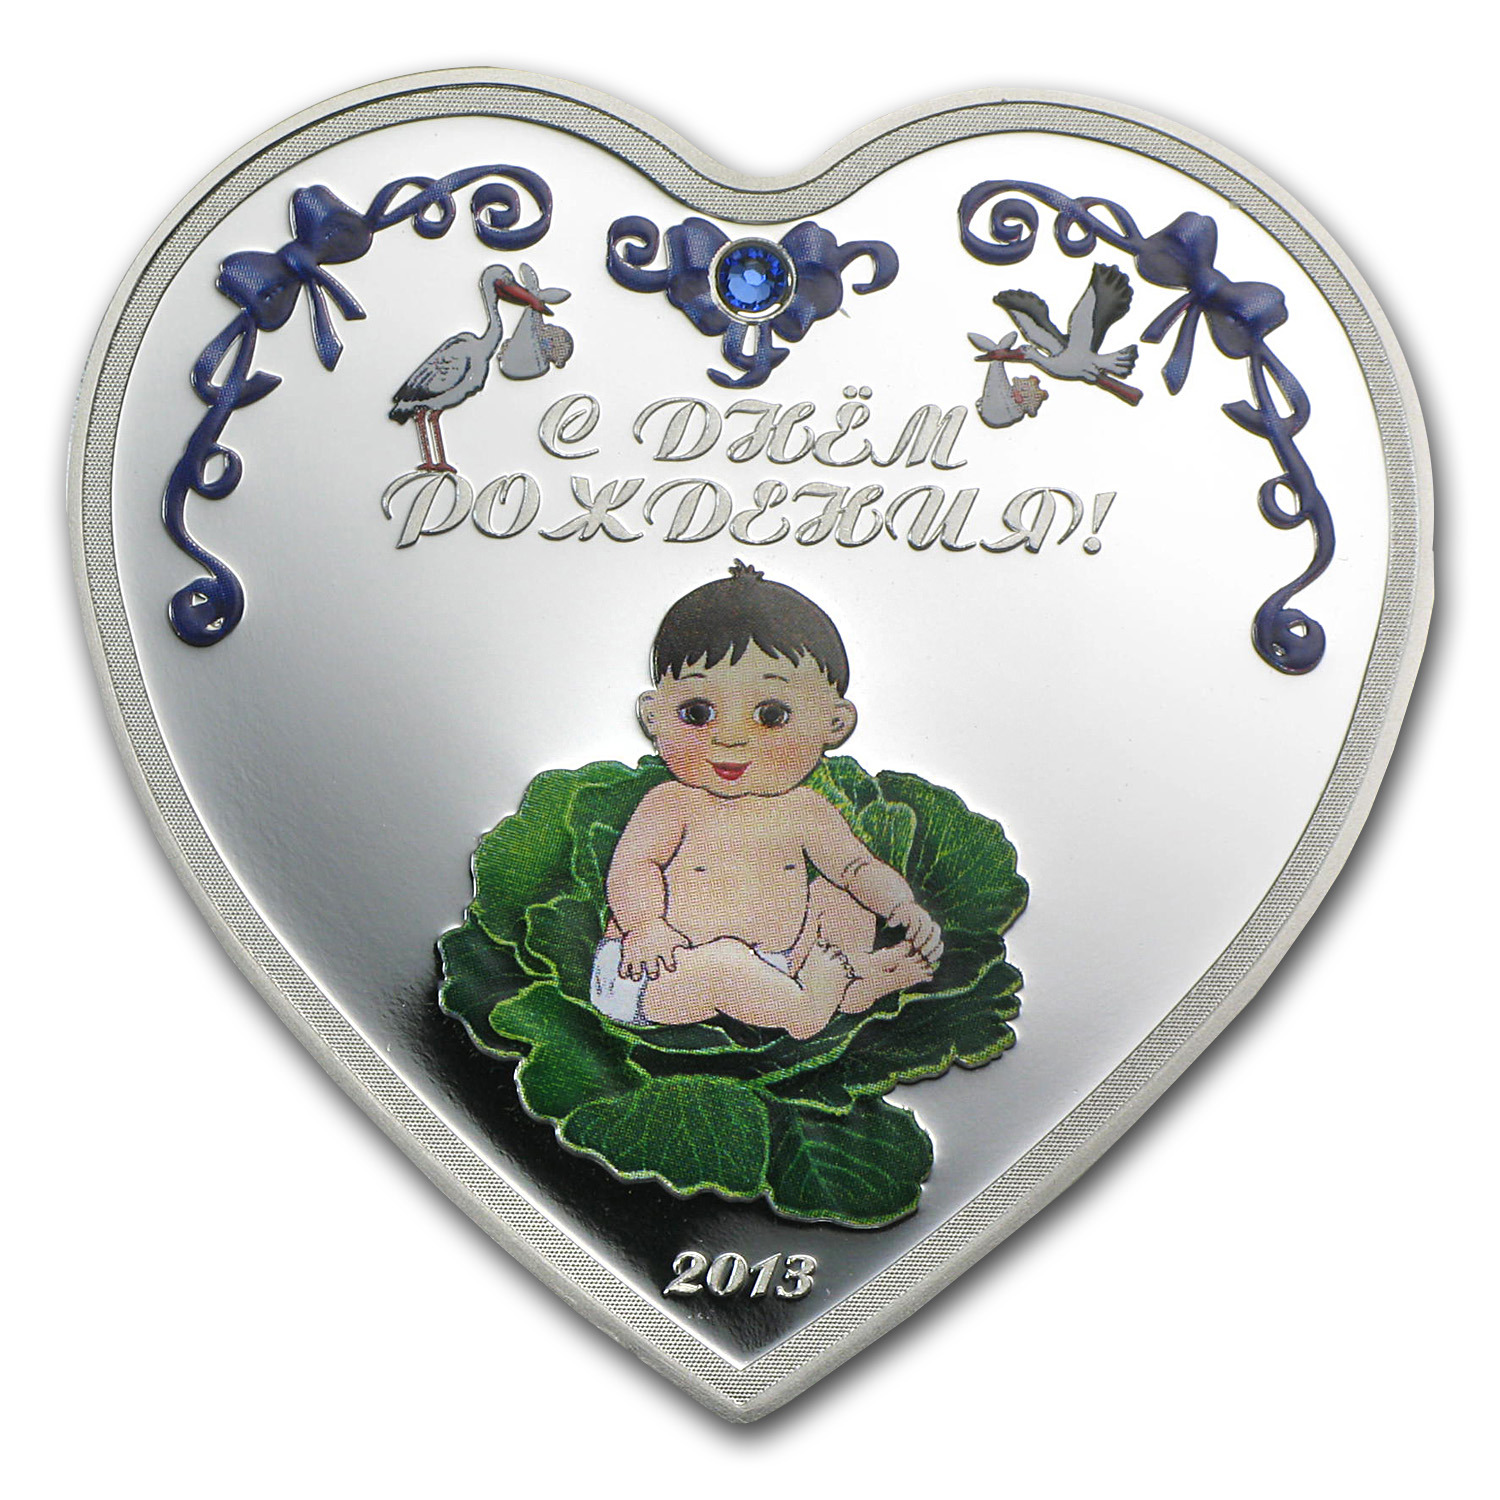 2013 Cook Islands Proof Silver $2 Birthday Heart Boy